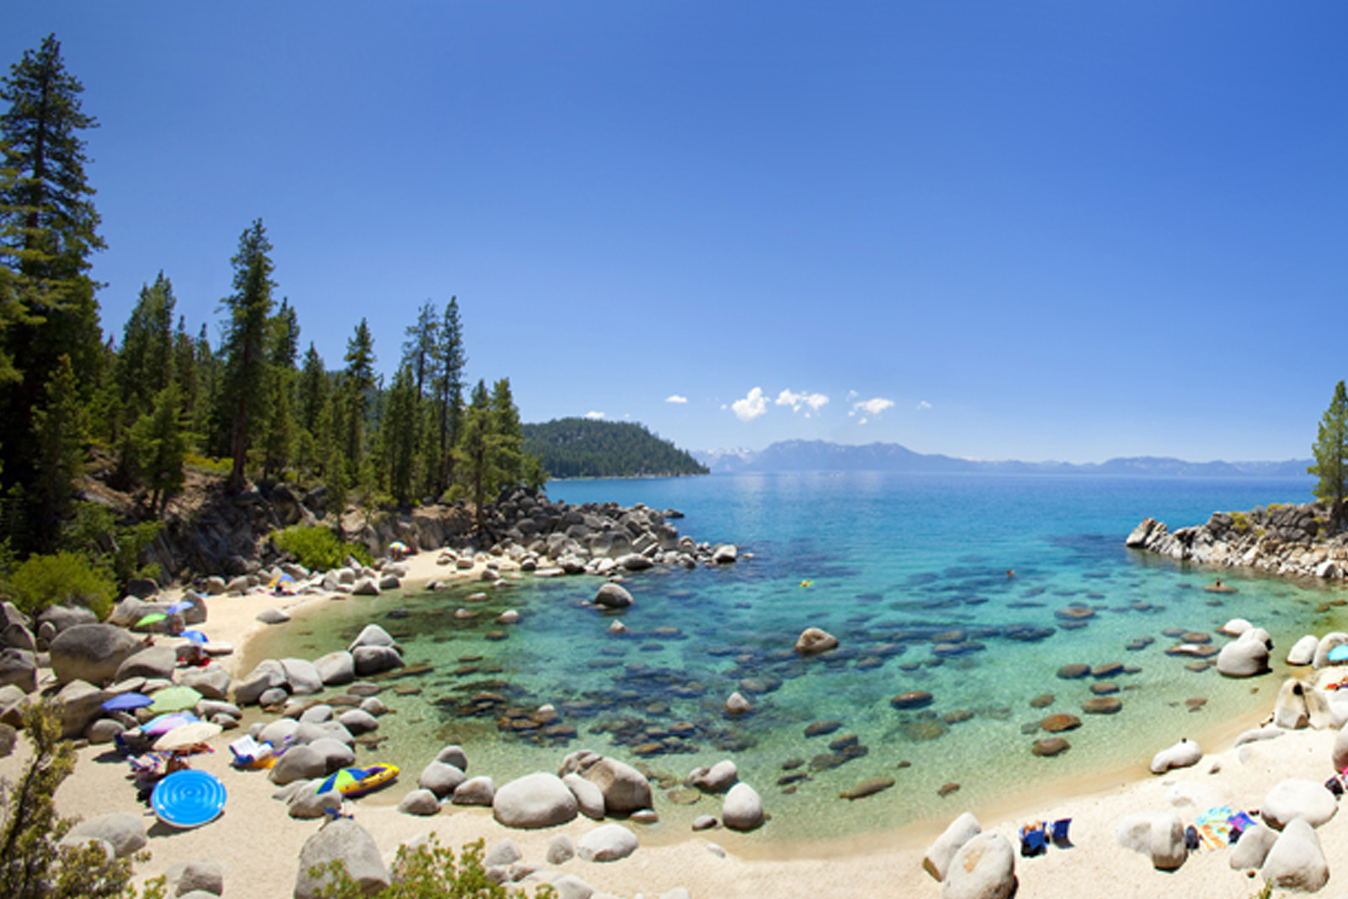 lake-tahoe-beach-summer-wallpaper-4.jpg